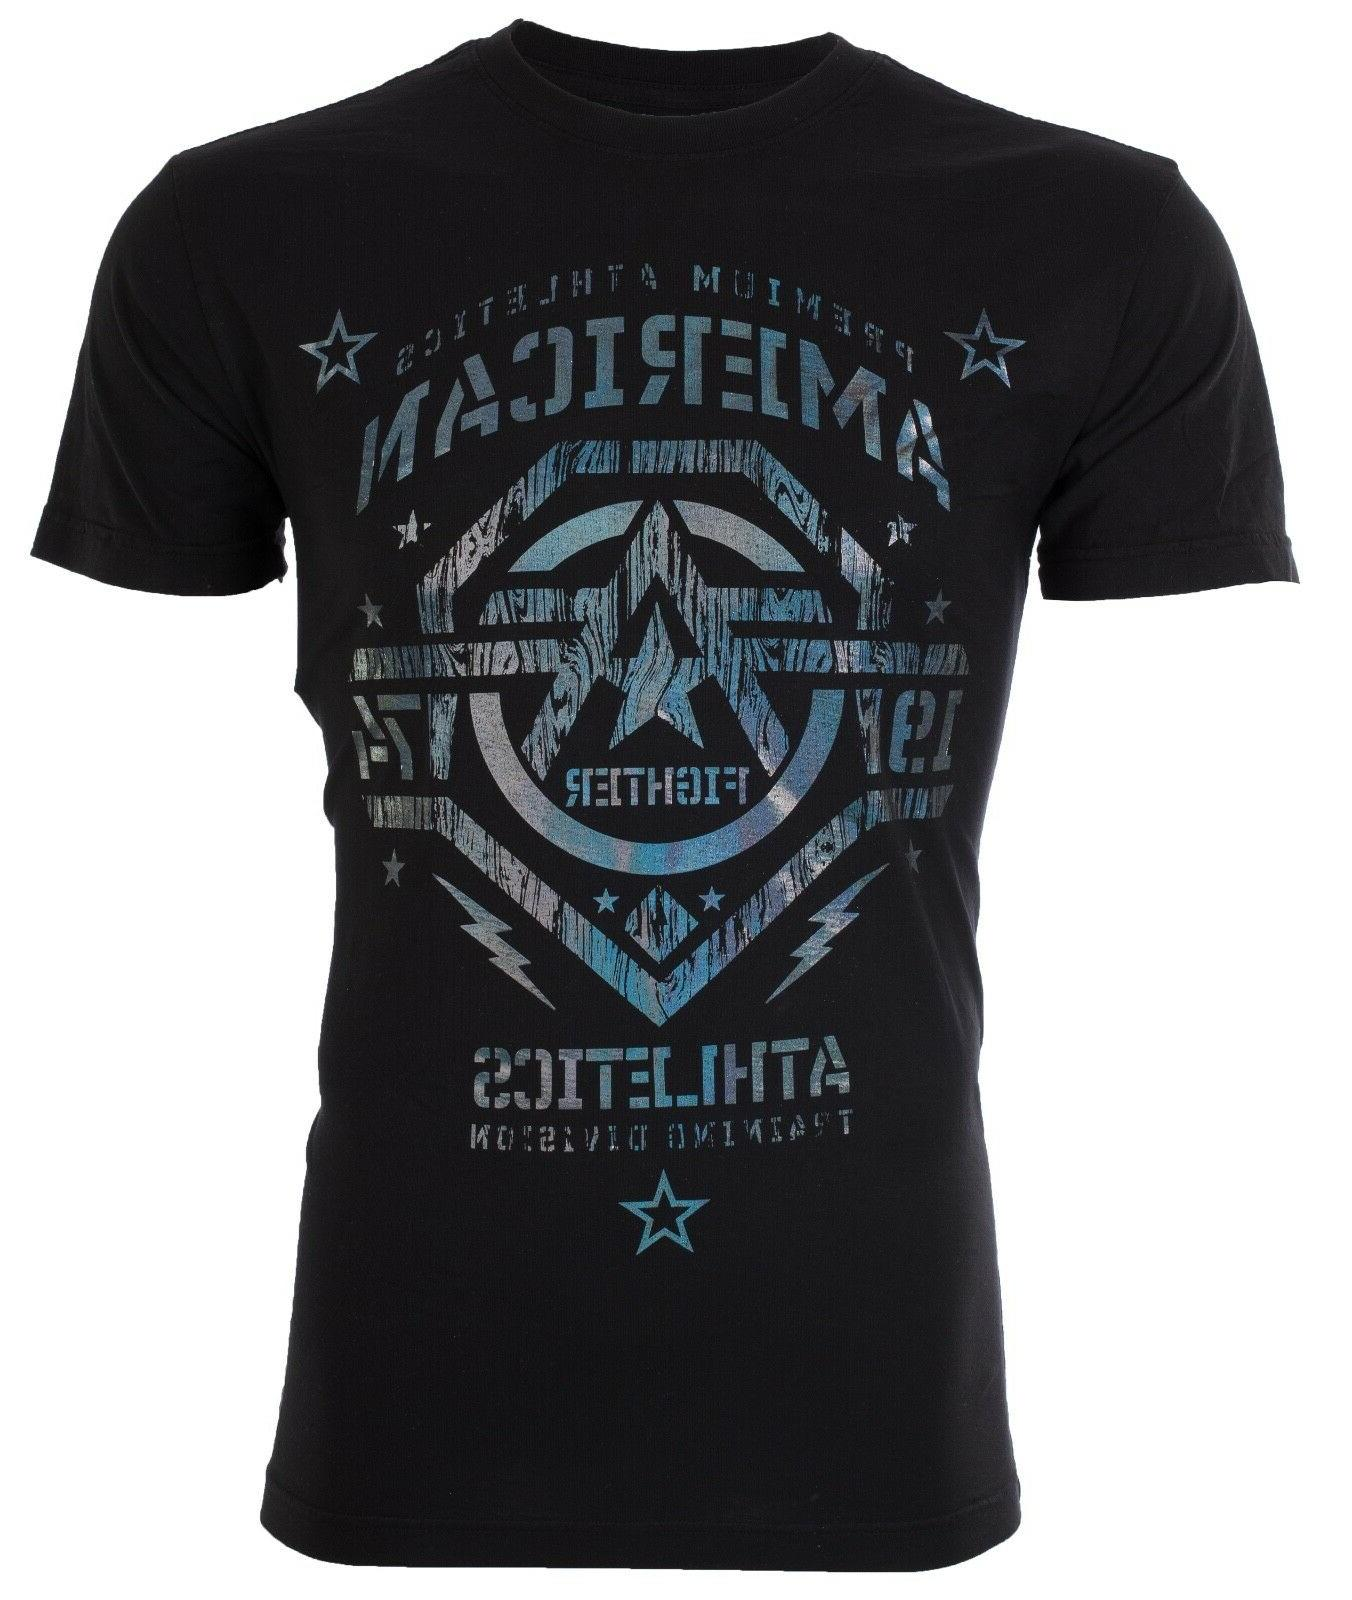 American Fighter Mens T-Shirt NEW MEXICO Black Hologram S-4XL